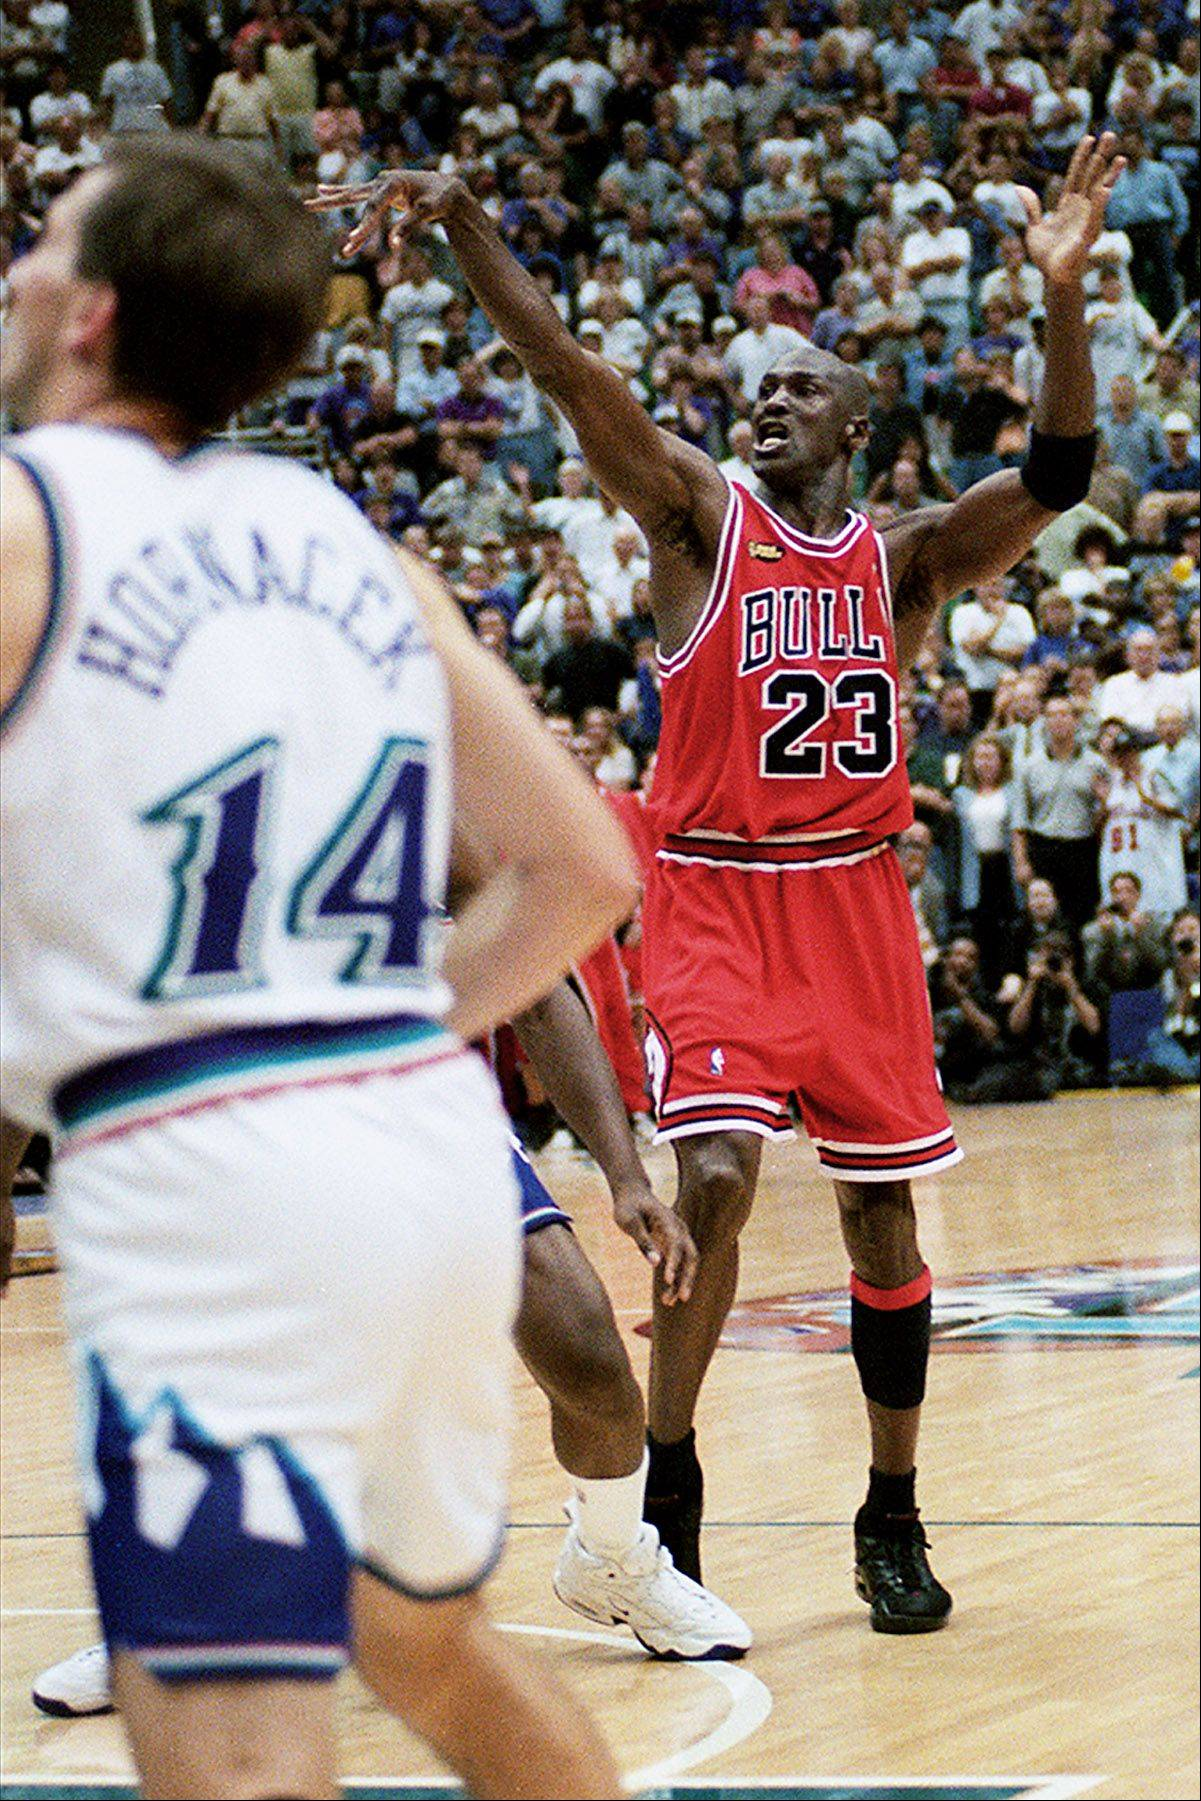 Michael Jordan takes The Shot that sealed the fate of the Utah Zazz once again in the the 1997-98 season.